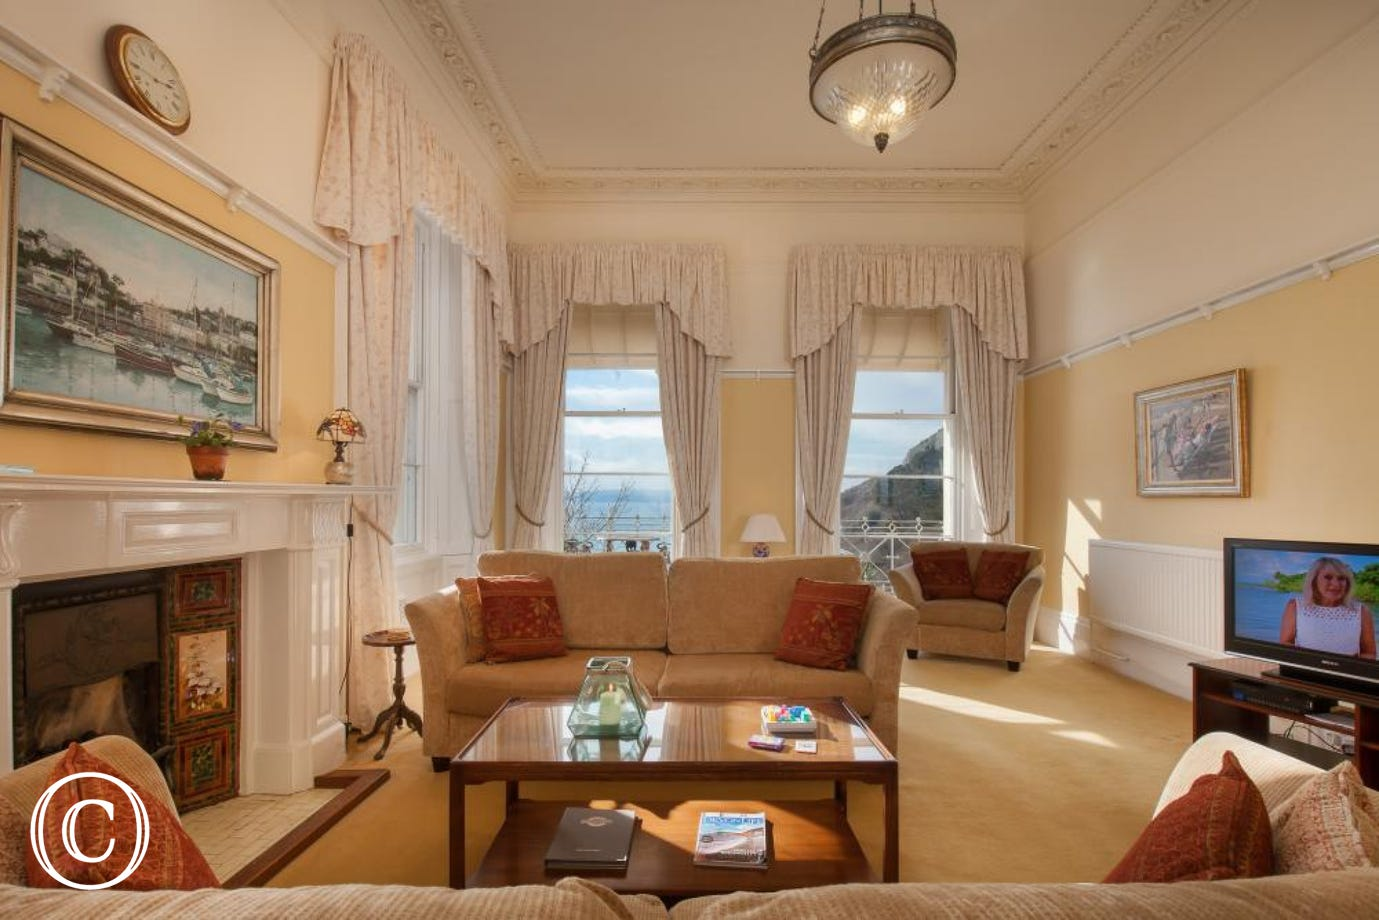 period self-catering holiday apartment in torquay to rent